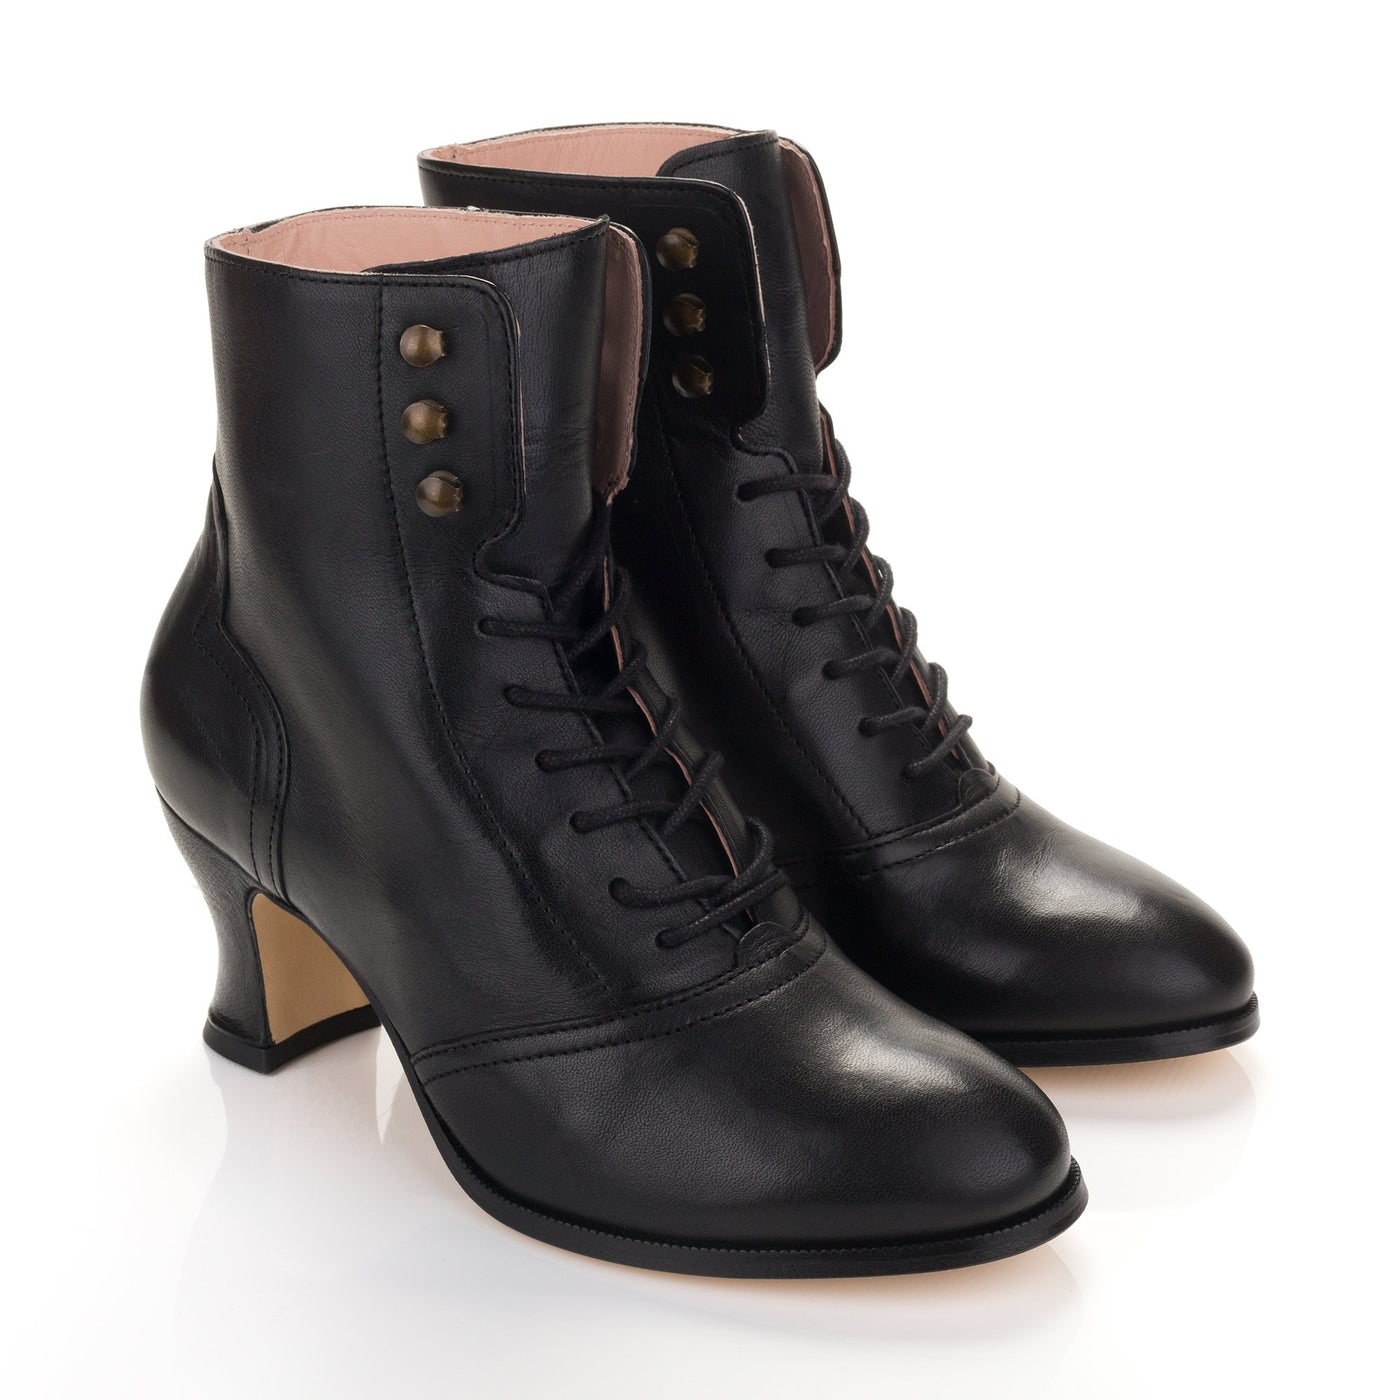 Alexa Black Lace Up Ankle Boots from Miss L Fire